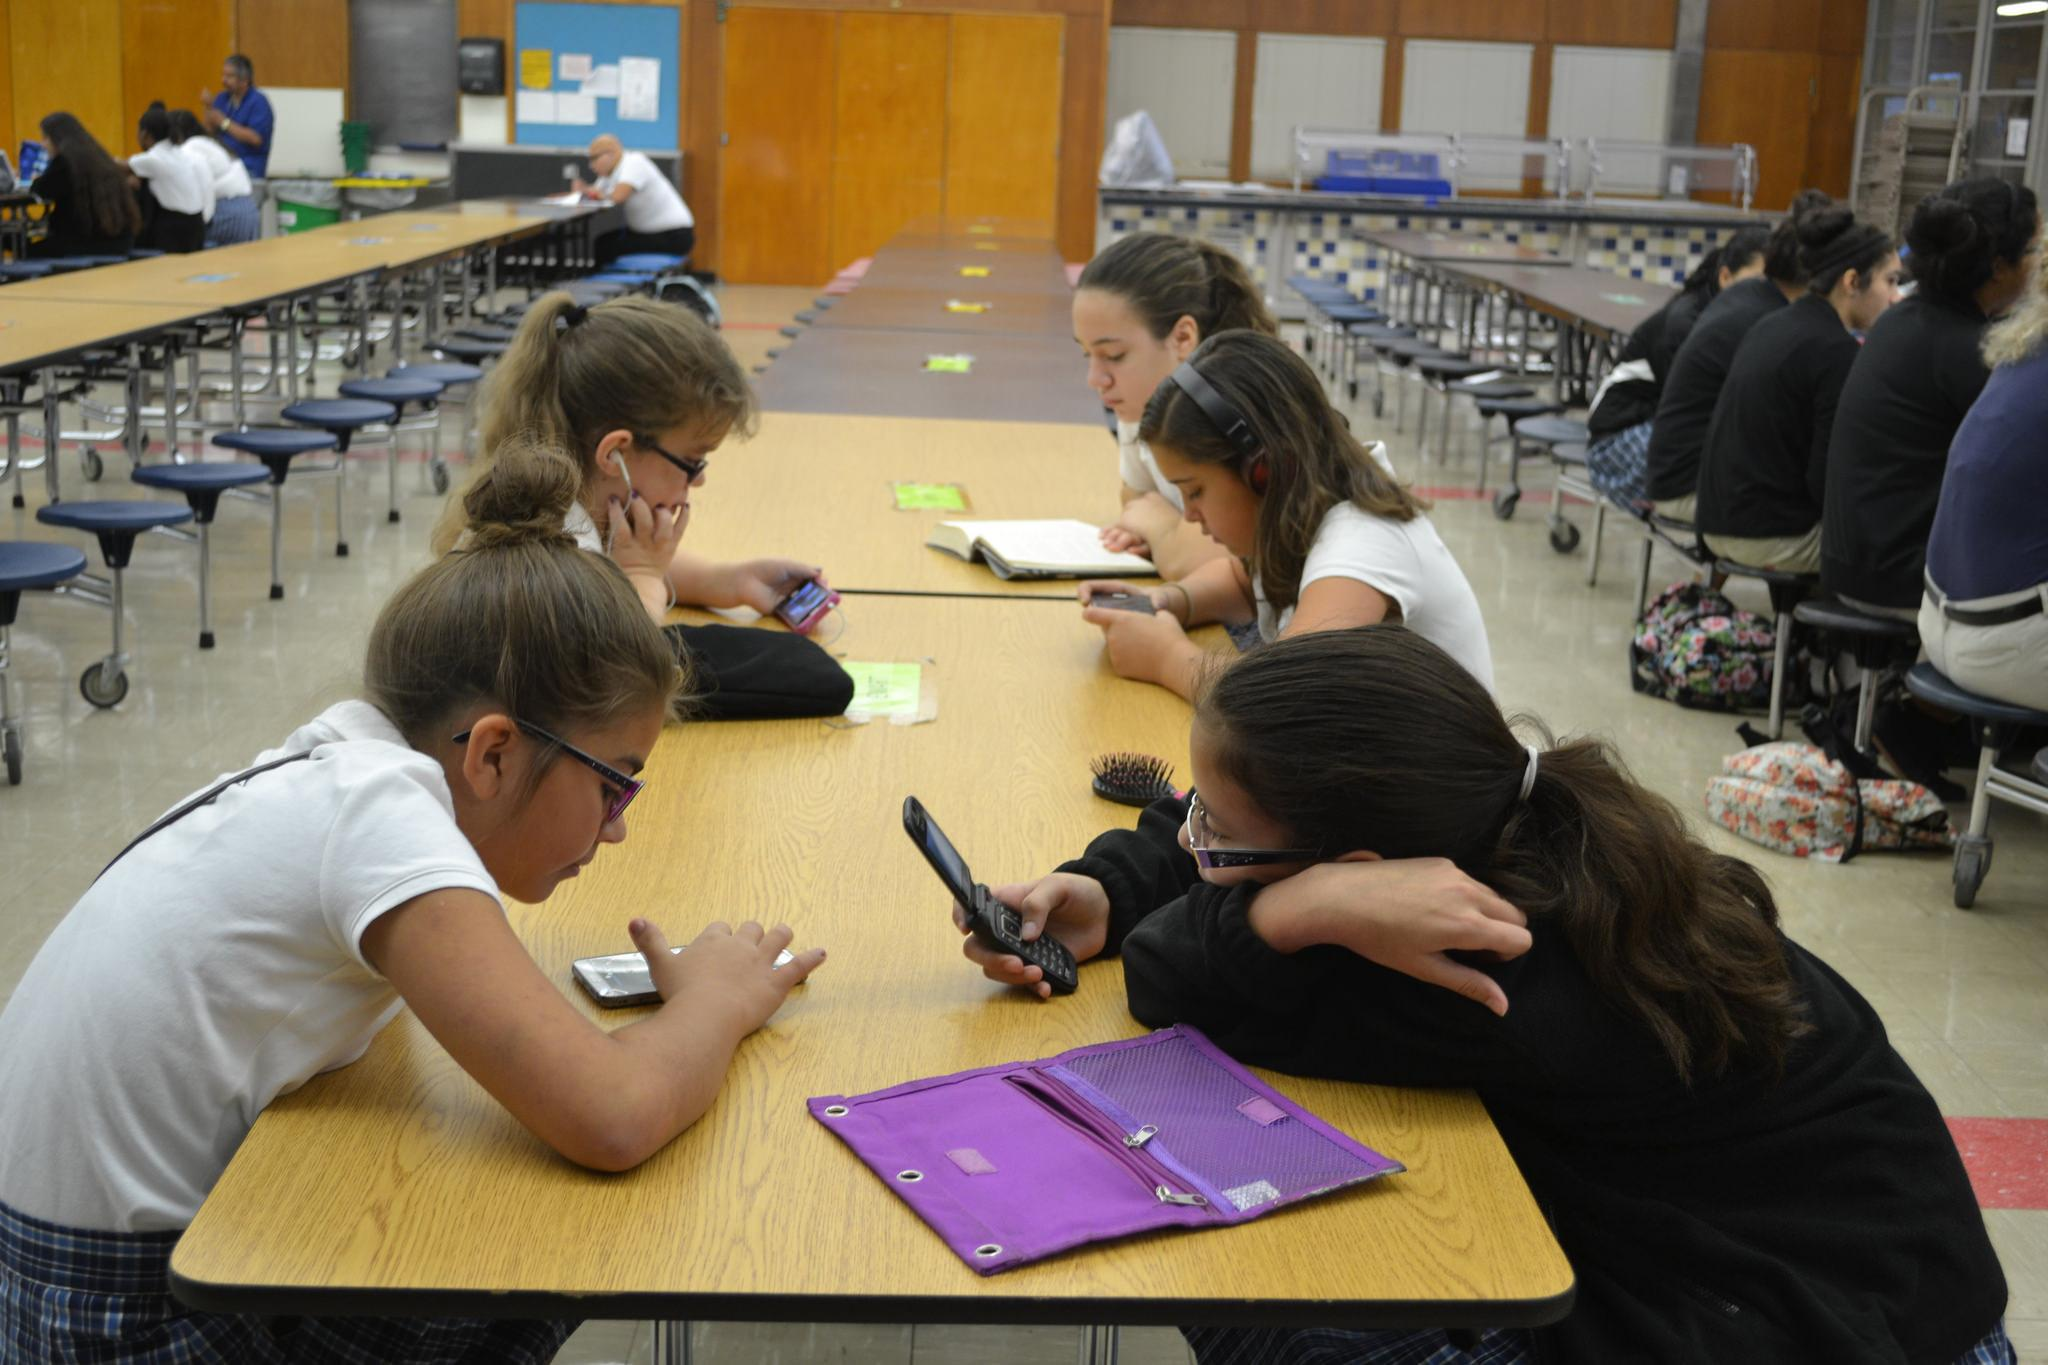 Middle schoolers use their phones before morning assembly. Photo by Mayrin Silva